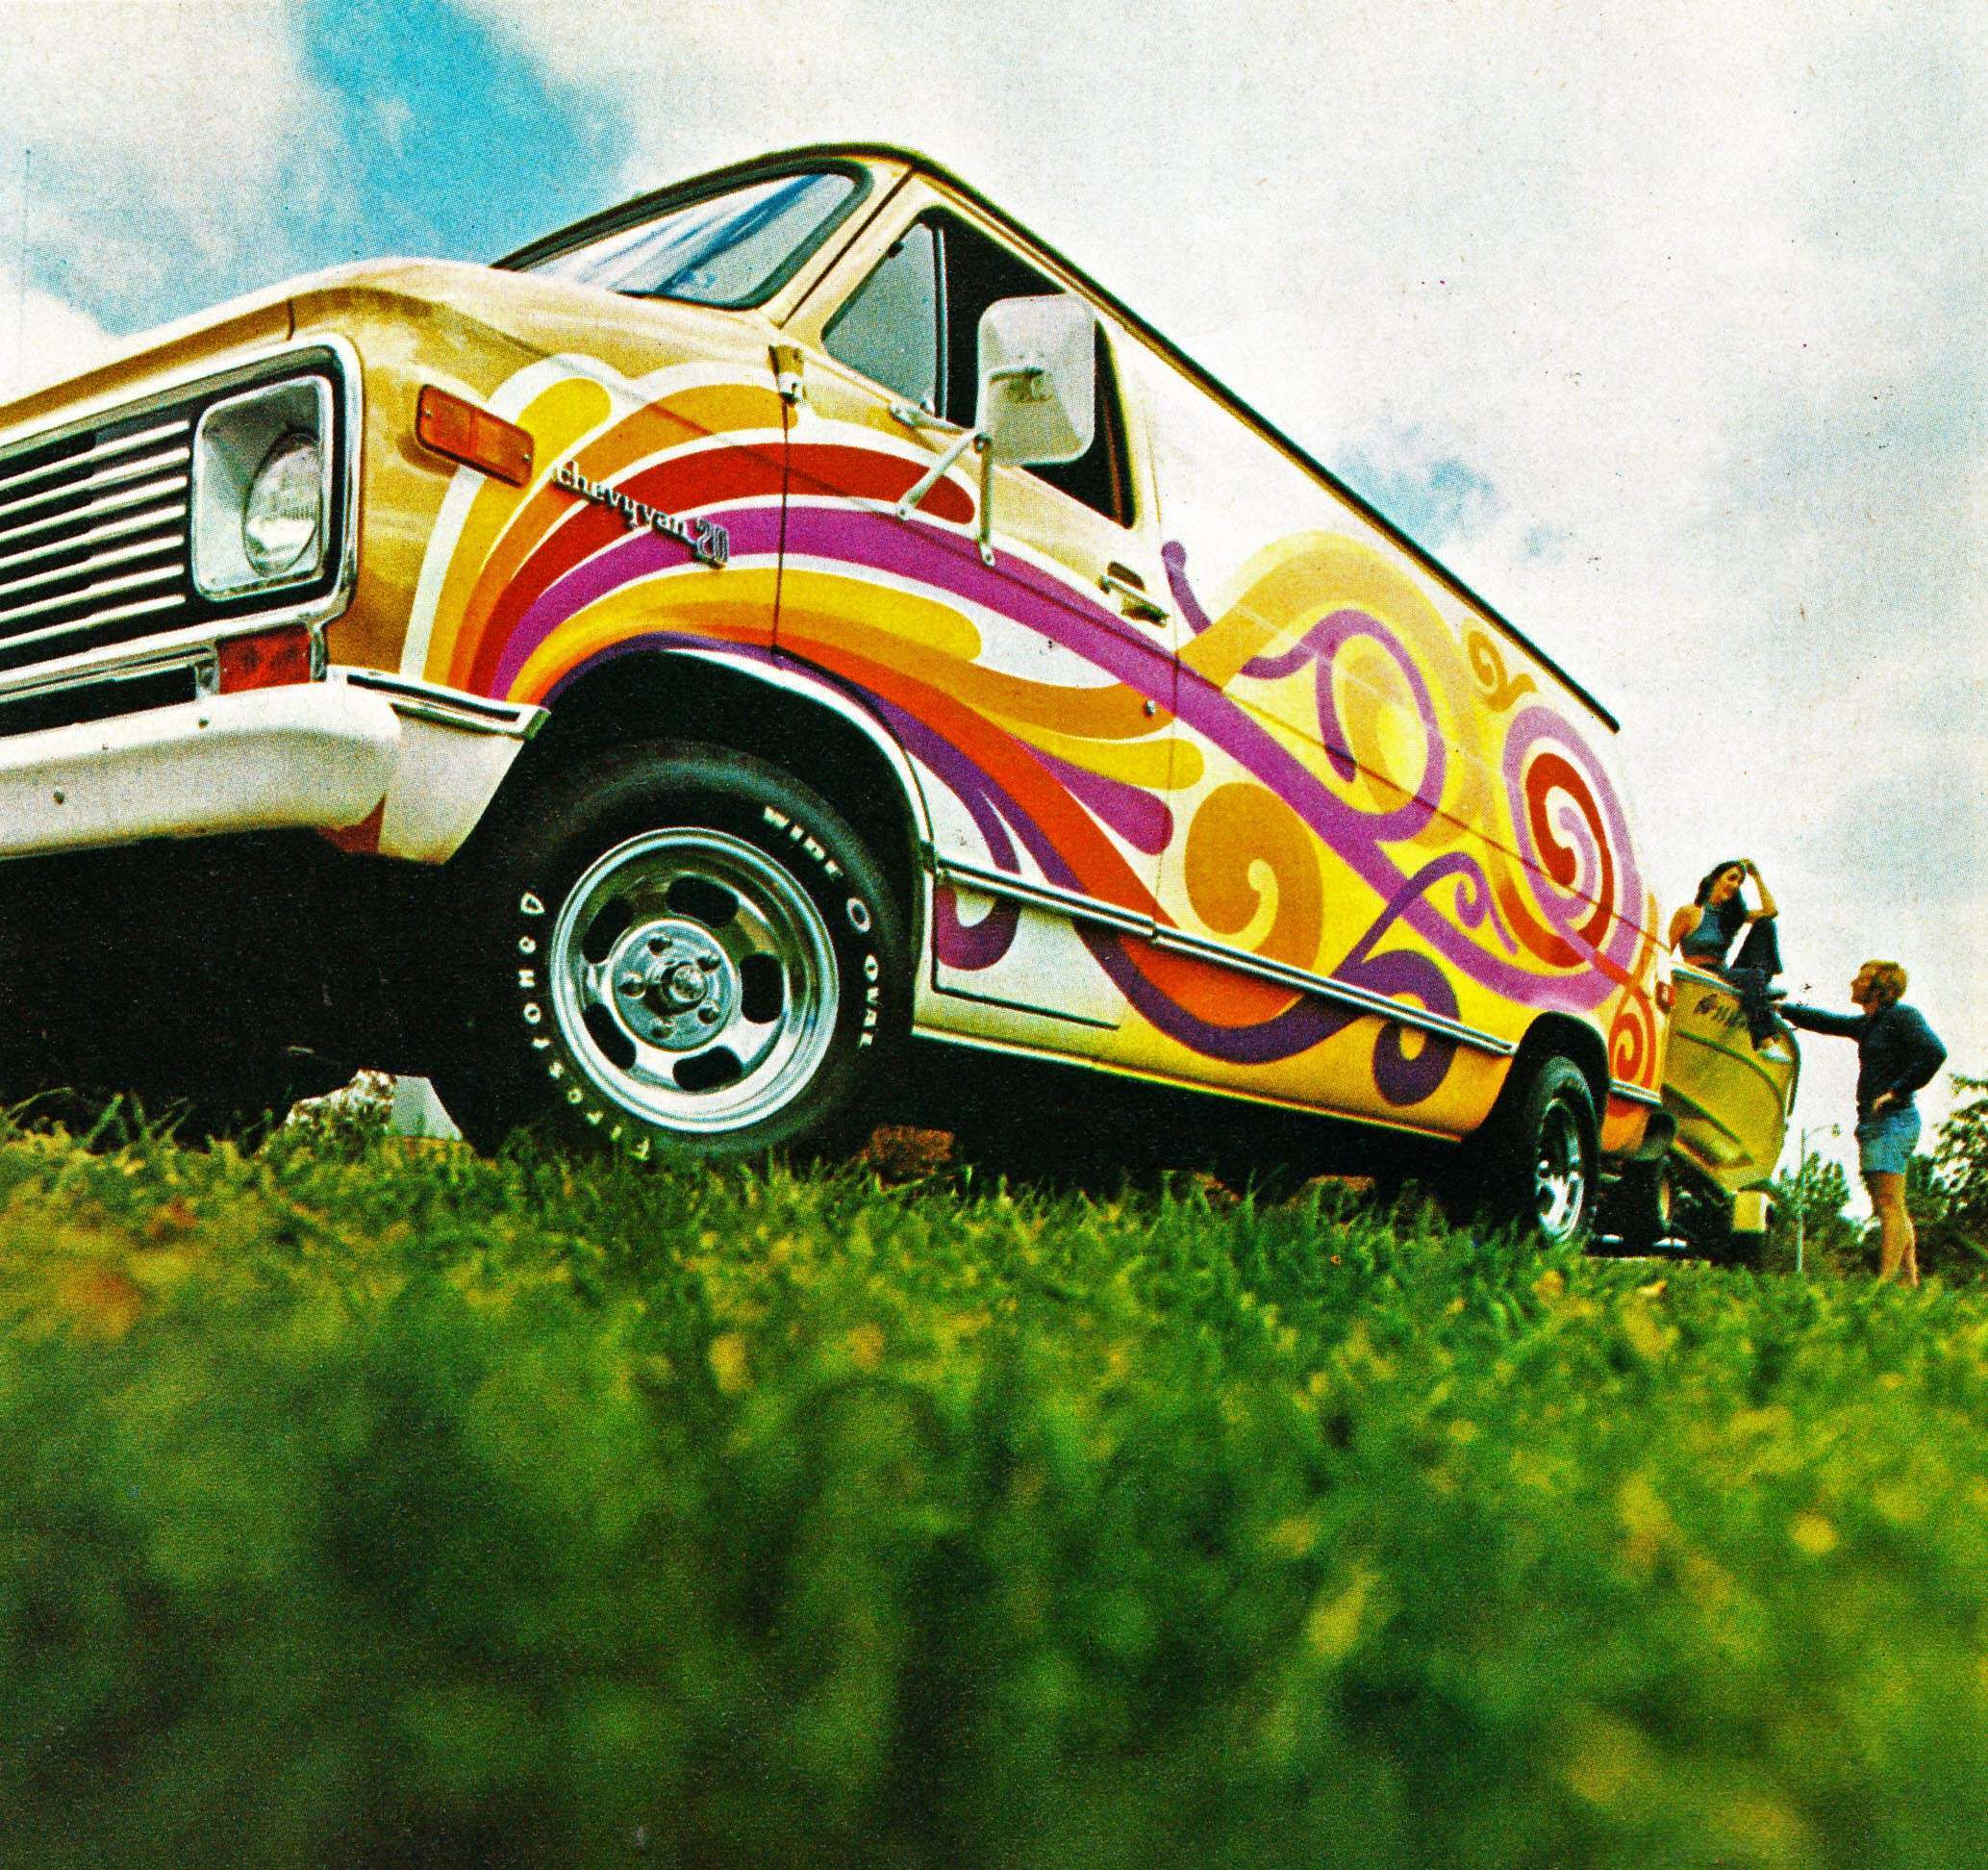 Days of the Shaggin\' Wagon: A Look at 1970s Custom Vans - Flashbak